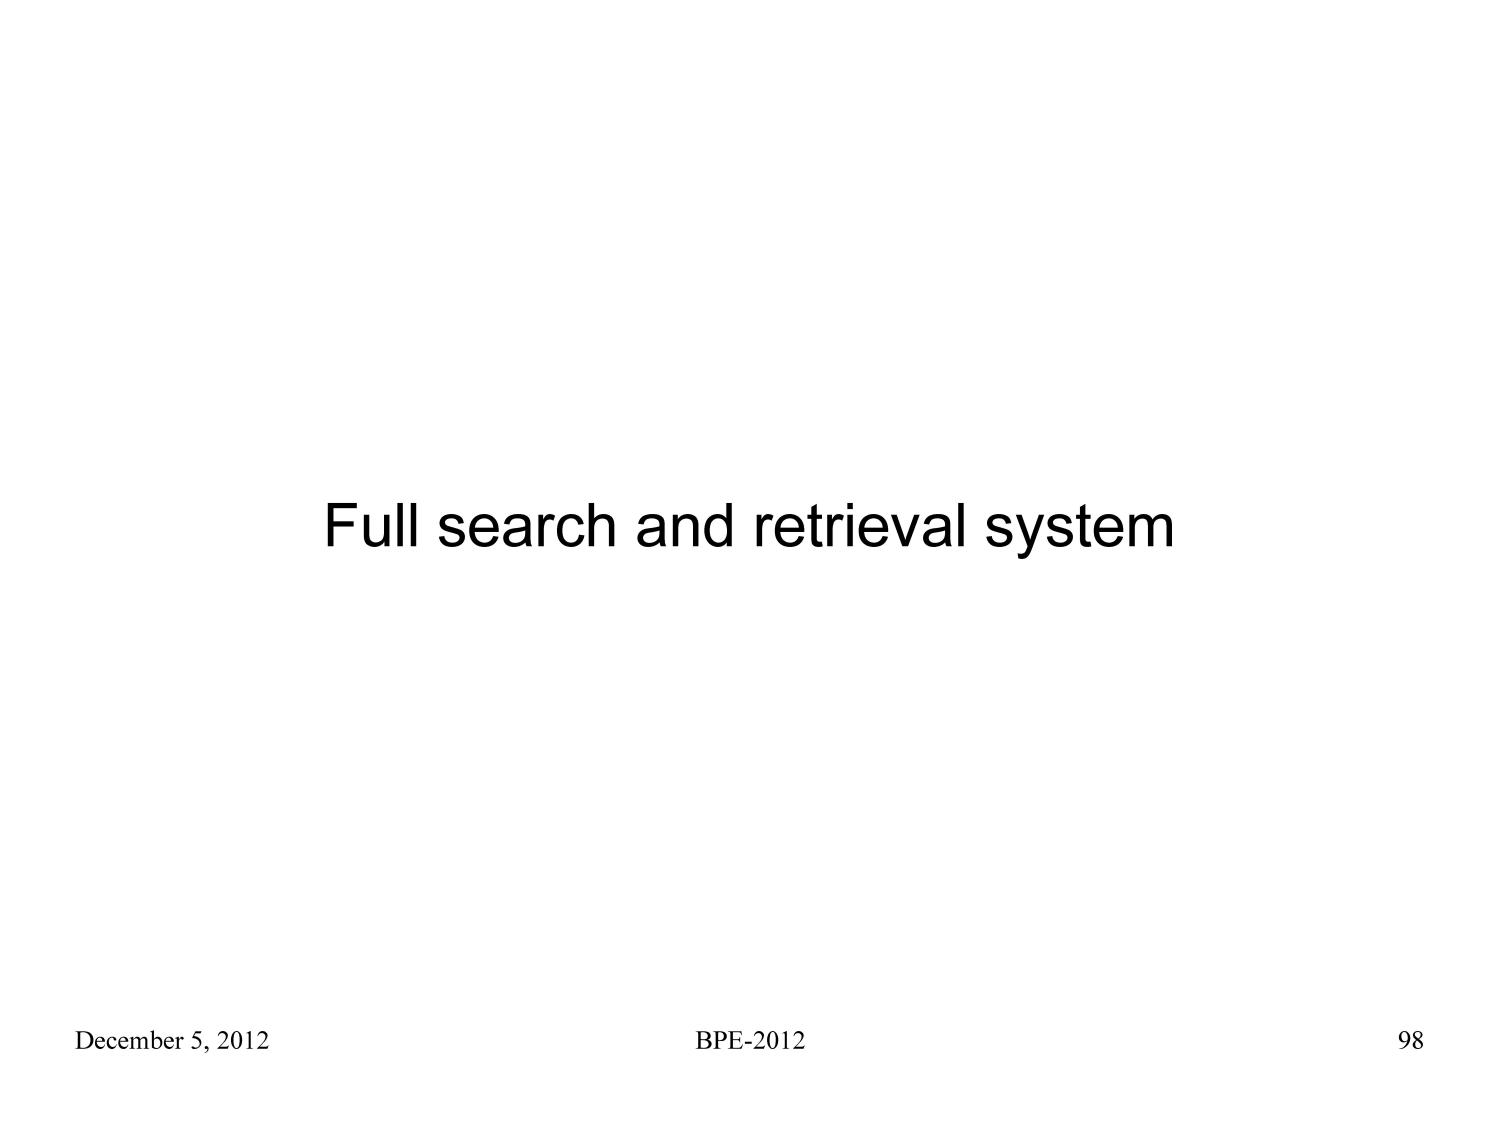 End of Term 2008 Presidential Web Archive: PDF Content Analysis                                                                                                      [Sequence #]: 98 of 104